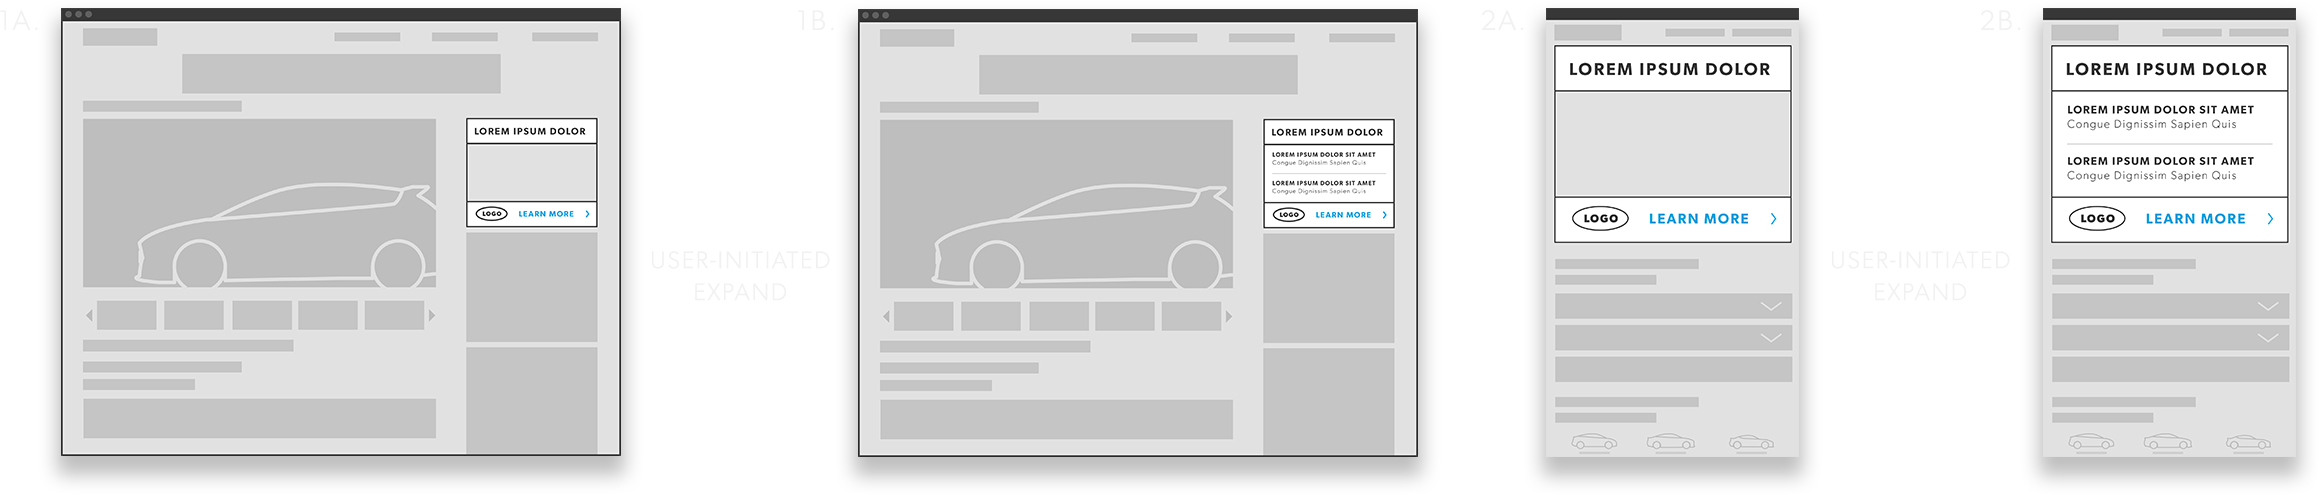 Dealer Locator Wireframe Desktop Graphic